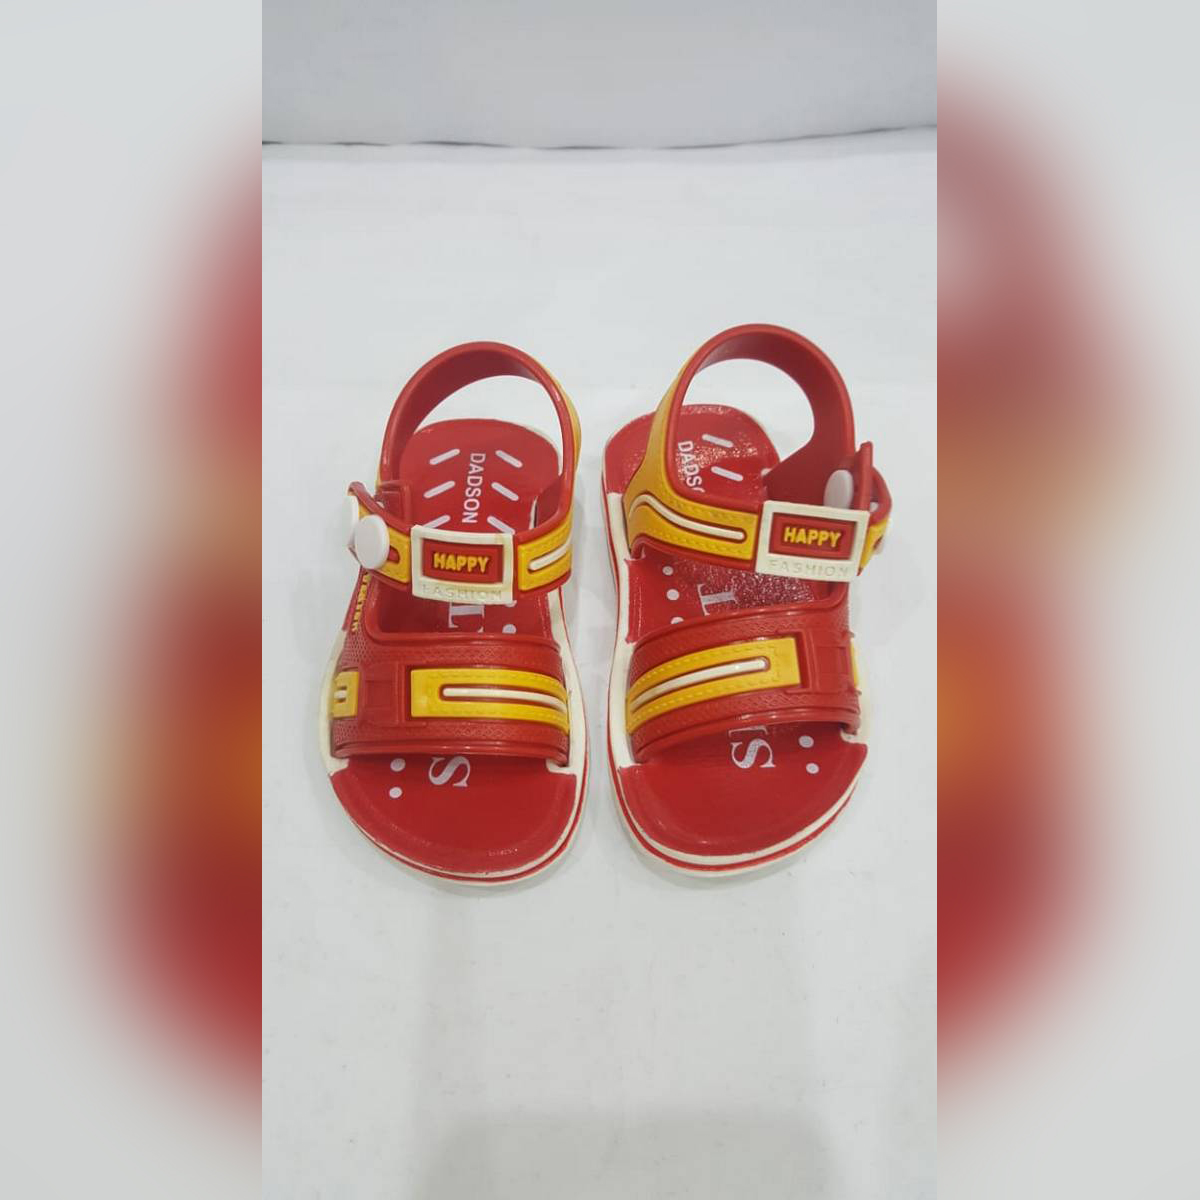 DADSON CASUAL RED SANDAL FOR KIDS LATEST ARRIVAL WITH FABOLUS STUFF